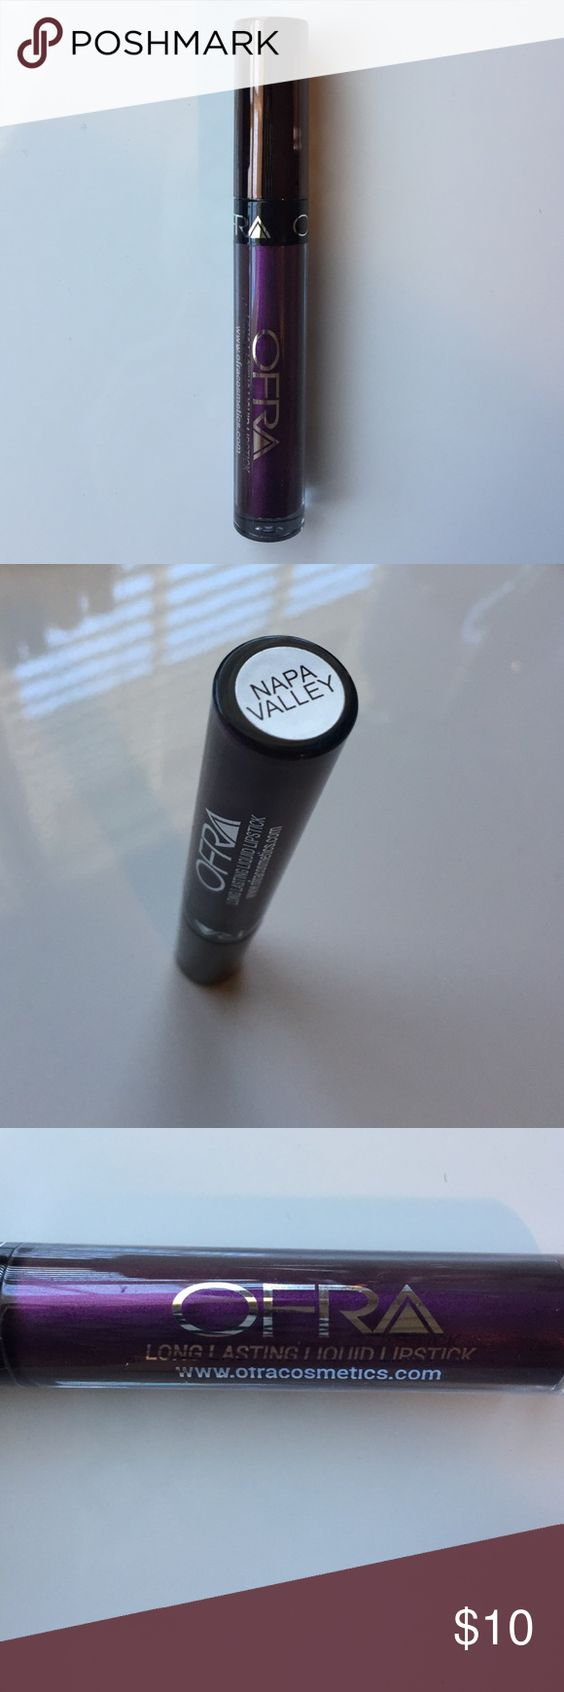 NEW Ofra Liquid Lipstick in Napa Valley BRAND NEW Ofra Liquid Lipstick in Napa Valley. Long Lasting Liquid Lipstick. Best liquid lipstick Formula on the market!! Ofra Makeup Lipstick